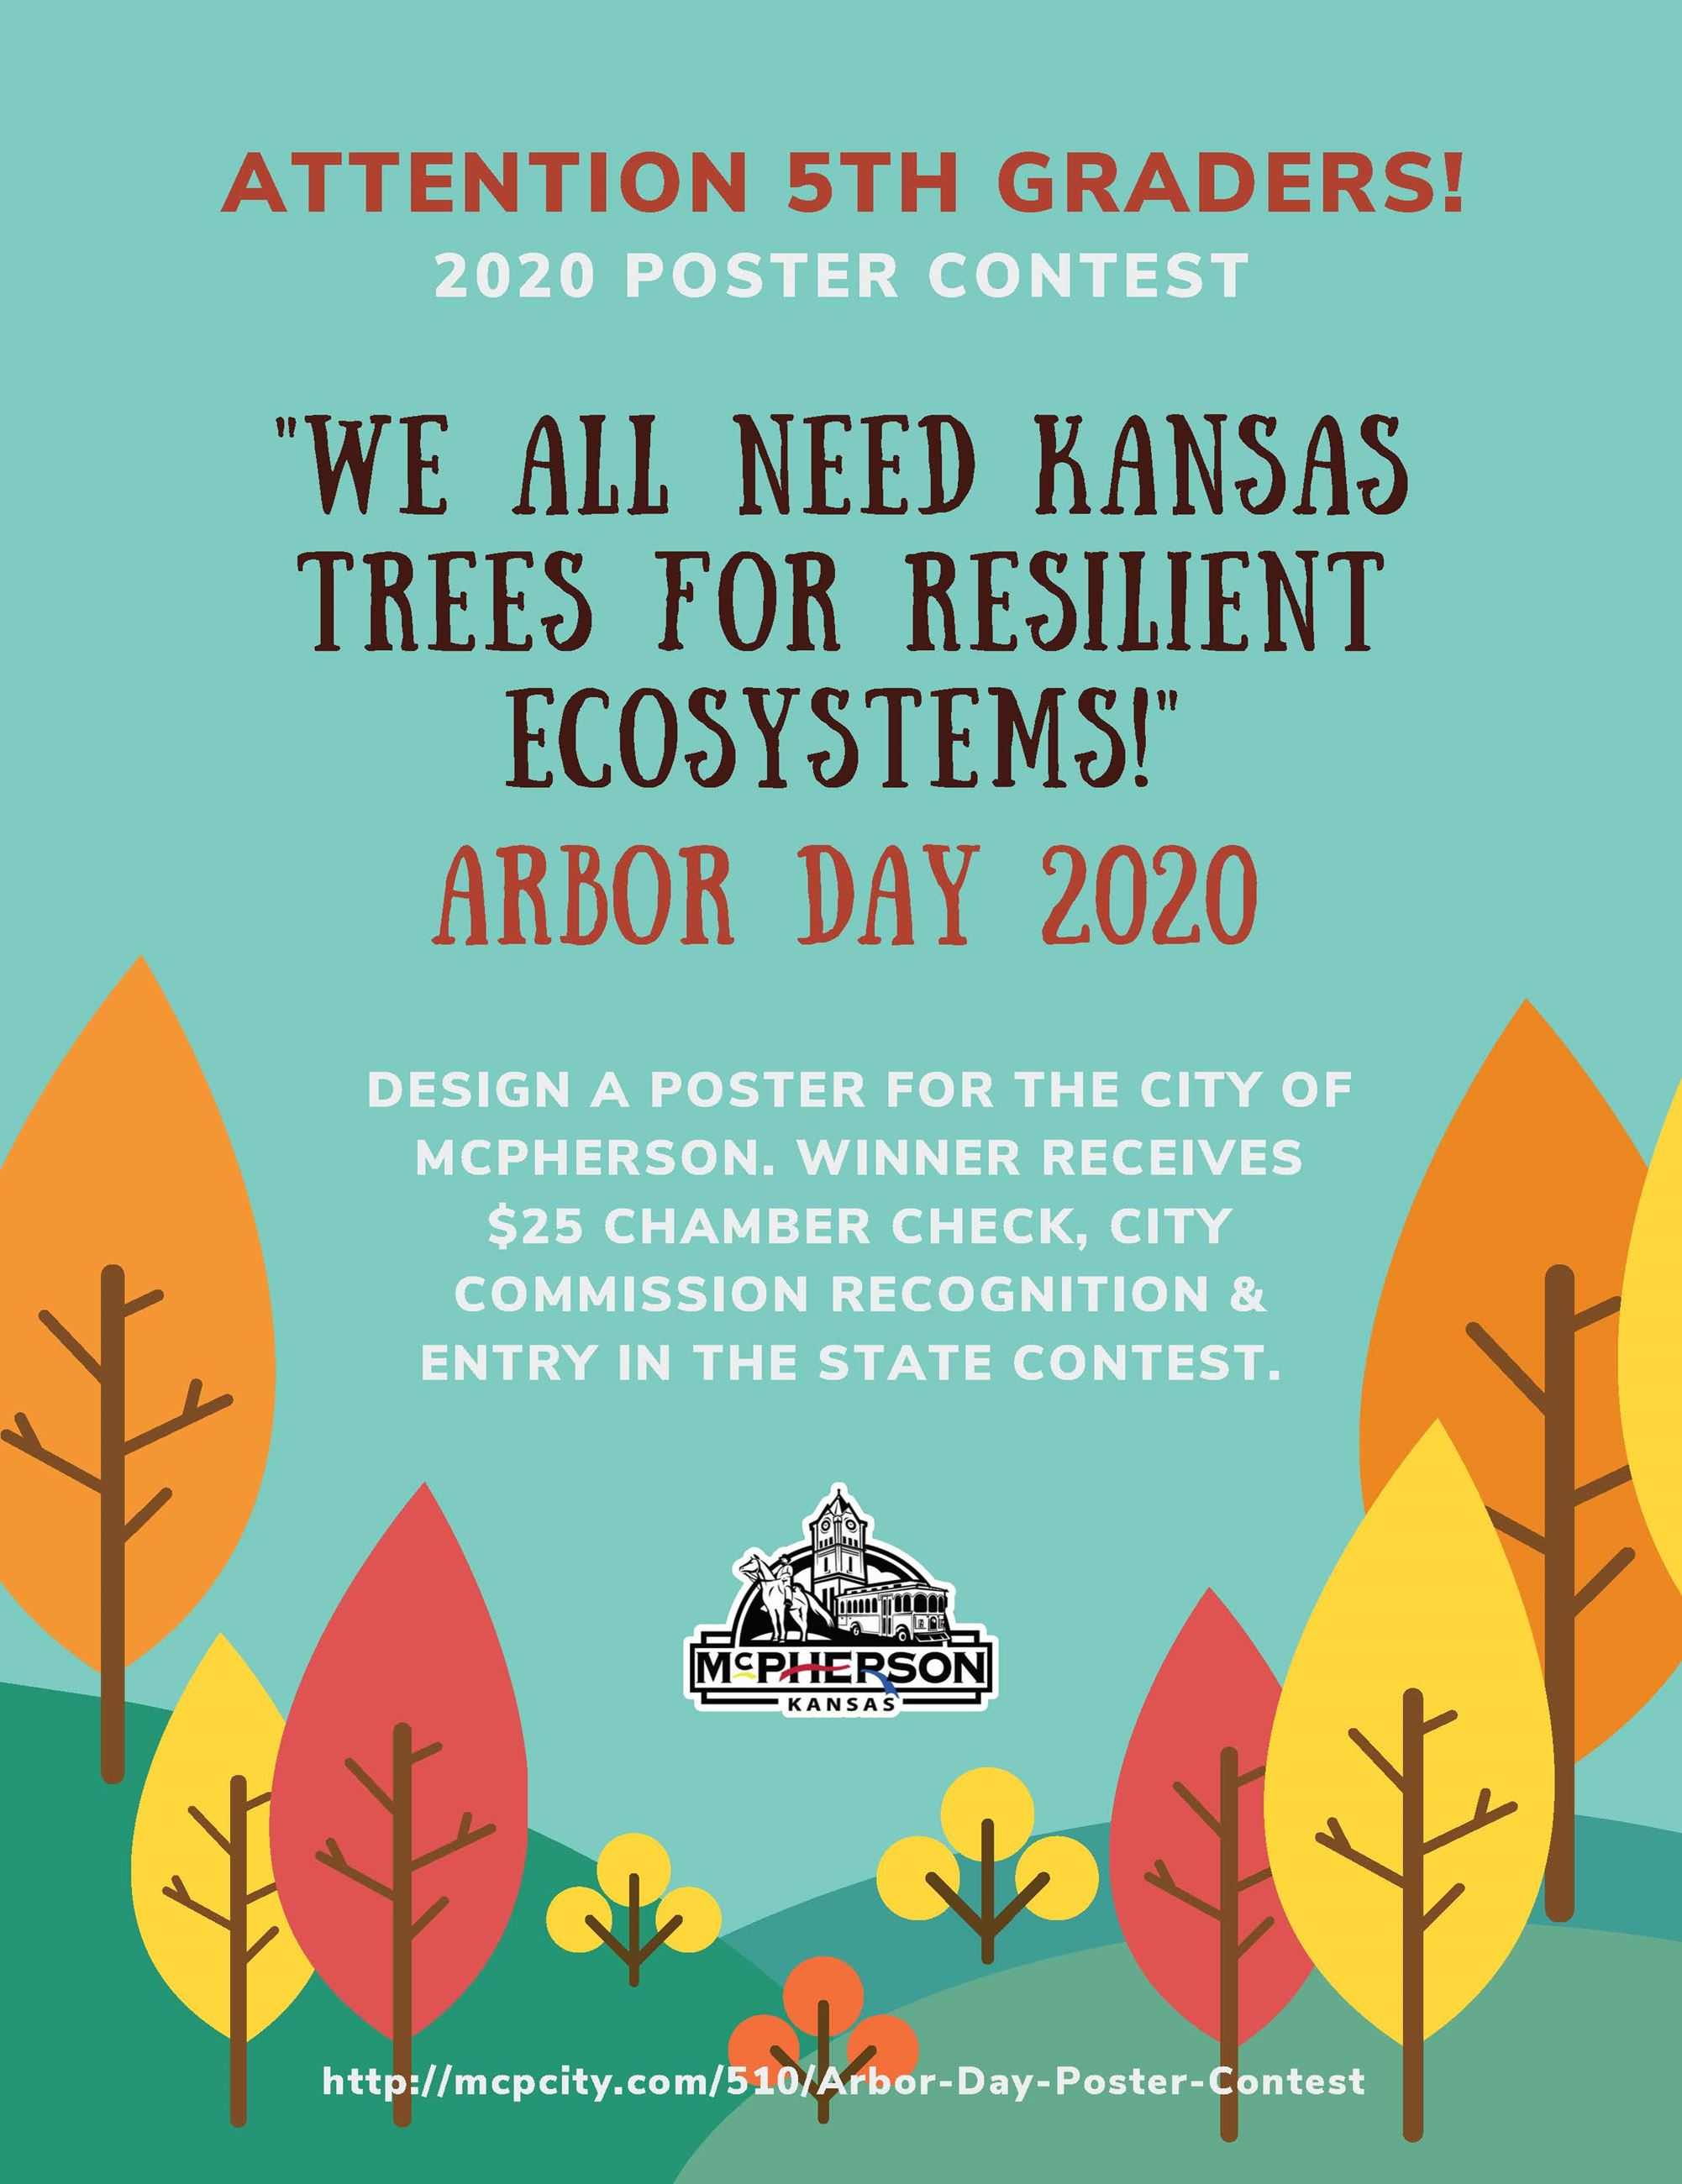 Poster with trees promoting the annual Arbor Day Poster Contest sponsored by the City of McPherson